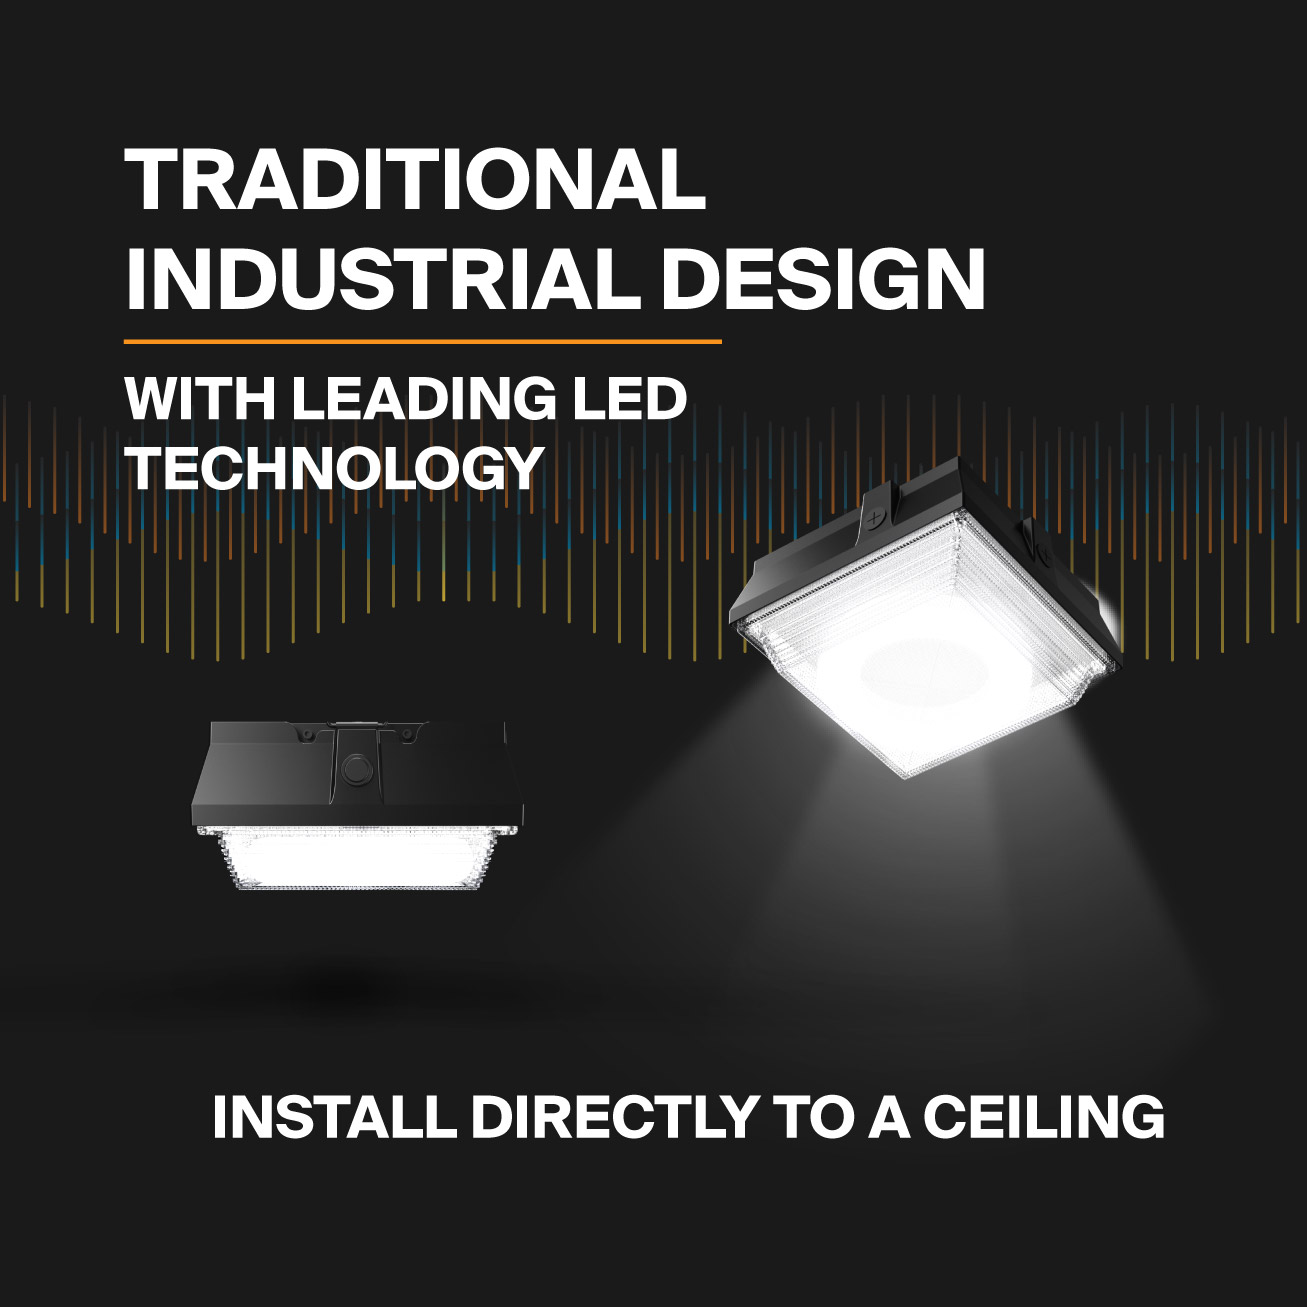 Probrite Helios20 LED Ceiling Light Traditional Industrial Design